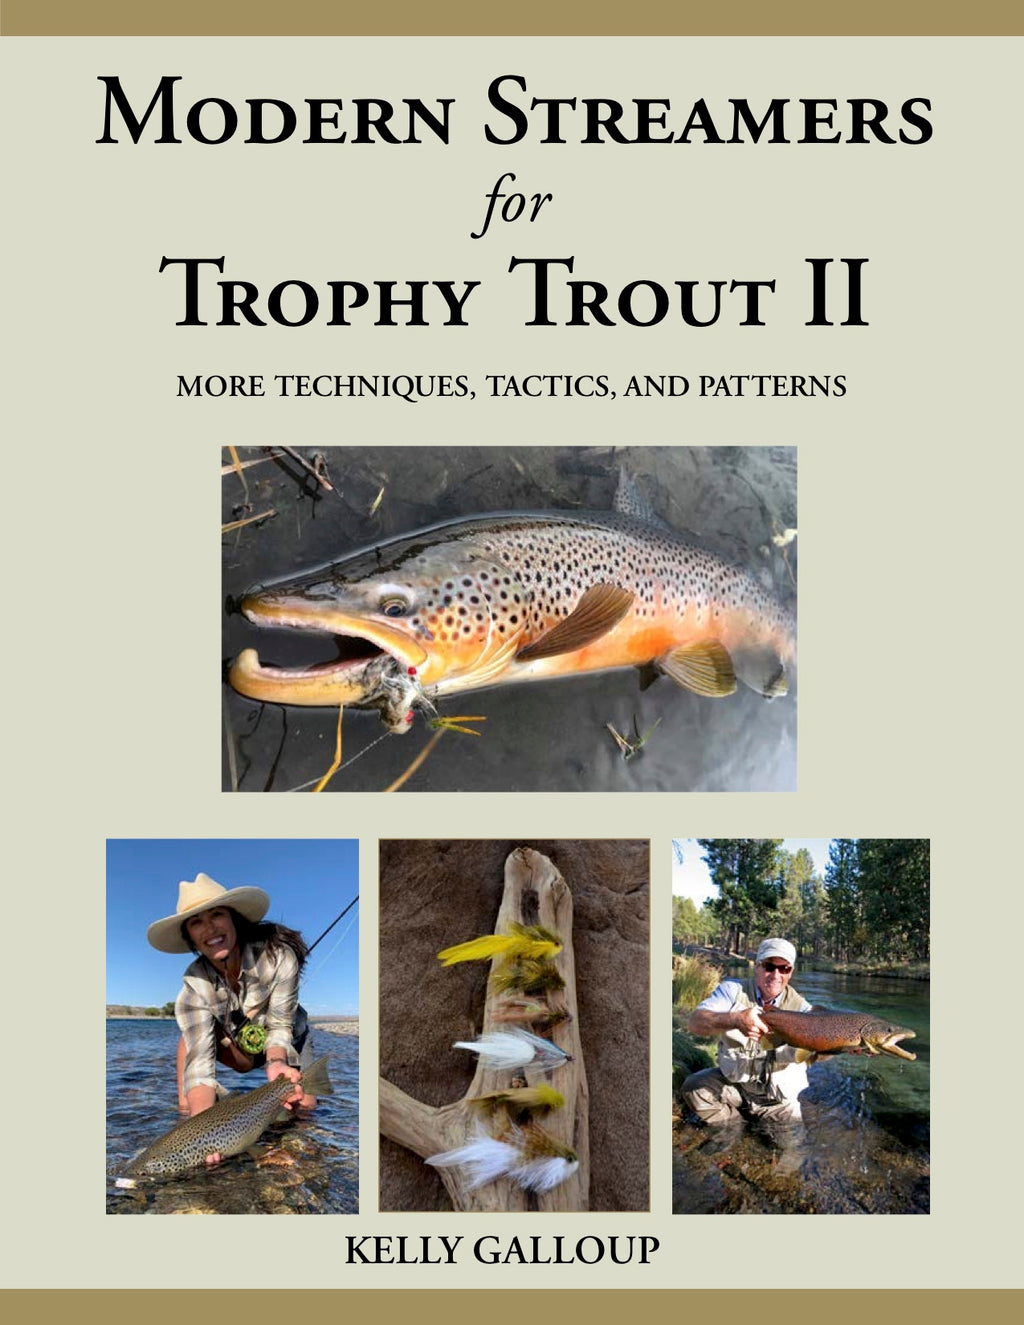 Modern Streamers for Trophy Trout II - Kelly Galloup